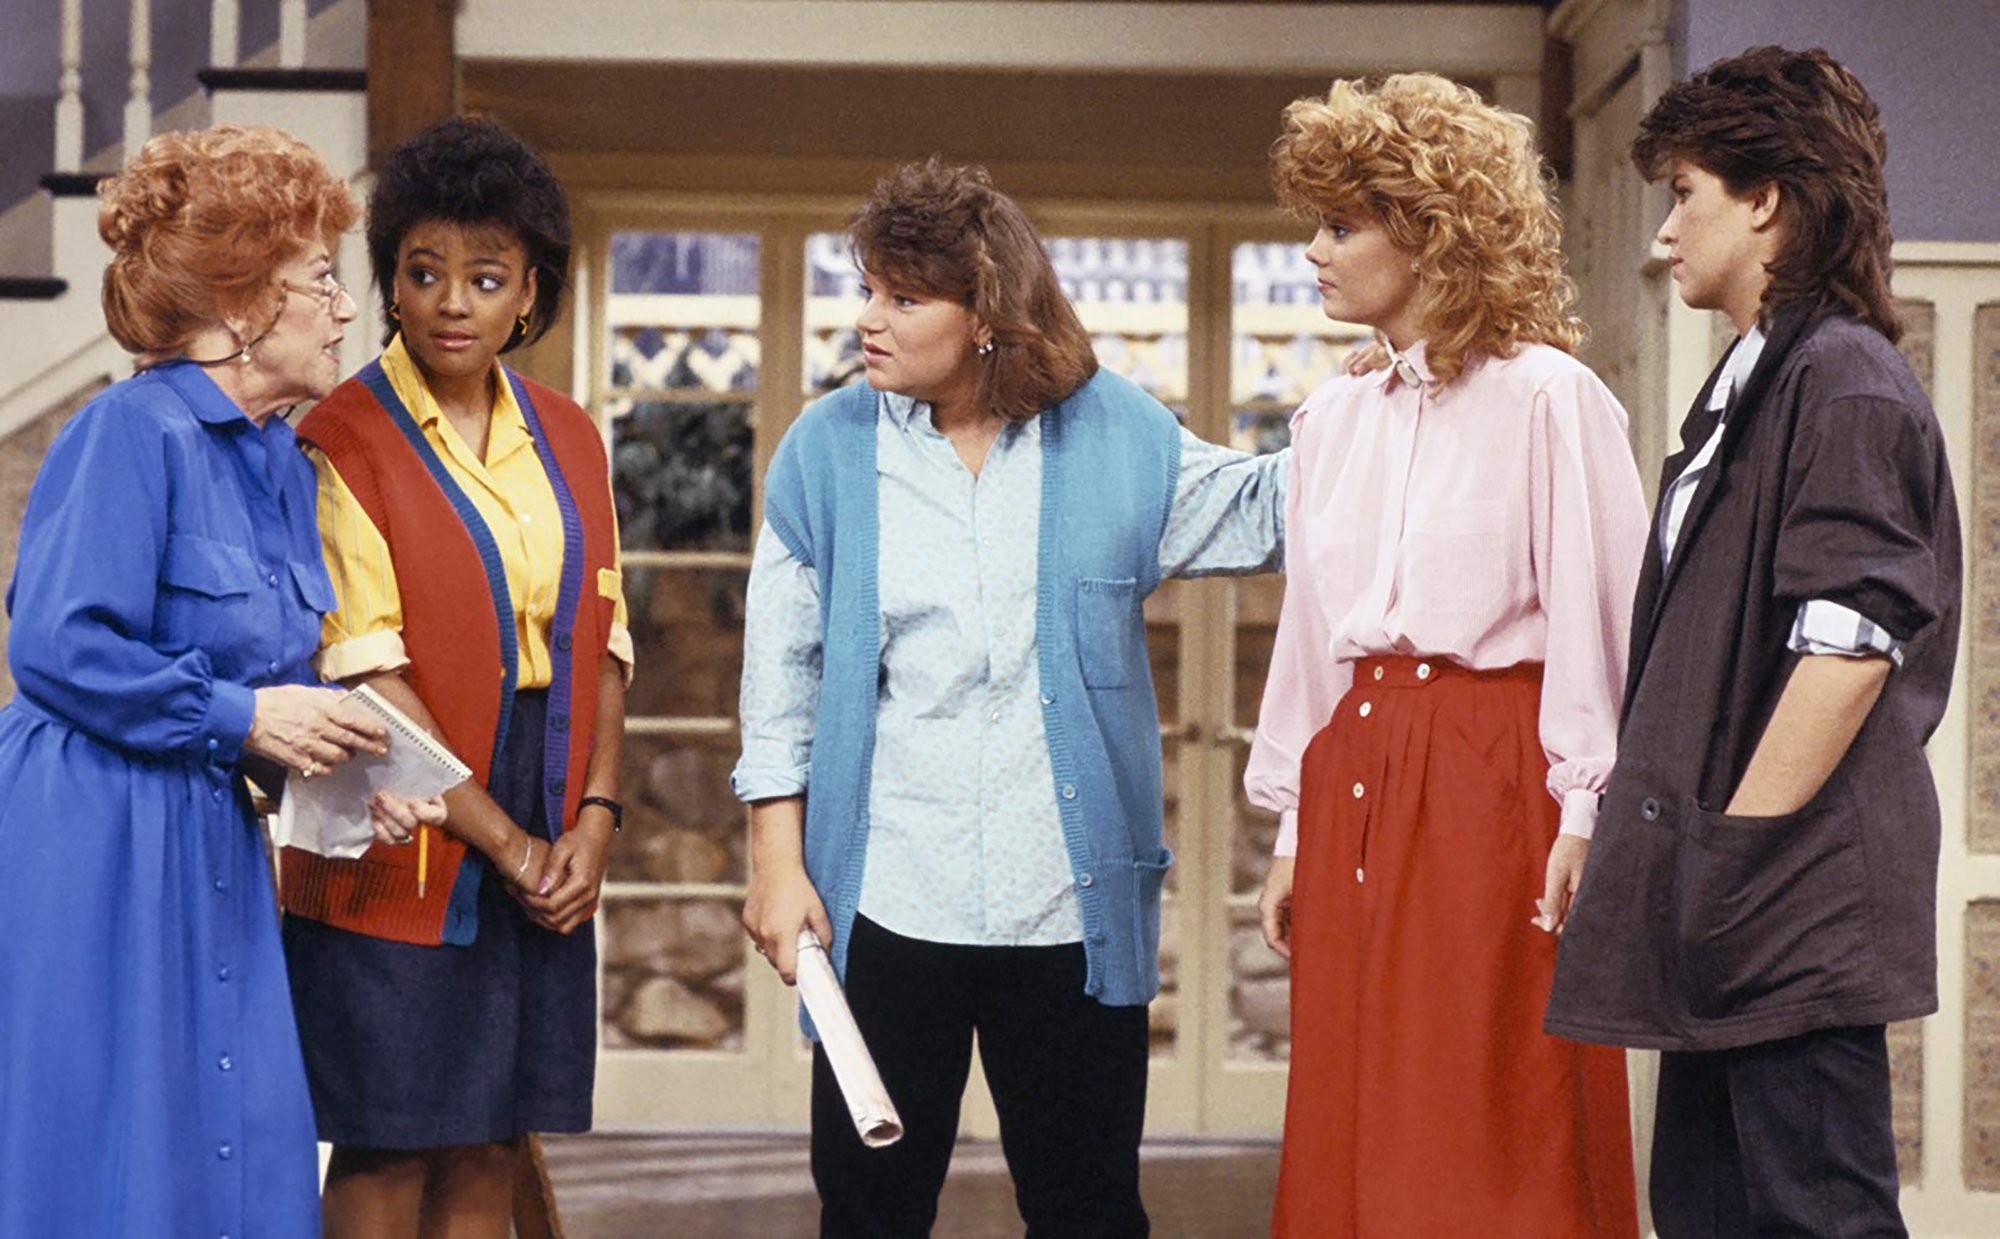 'The Facts of Life' cast is back together for a holiday special